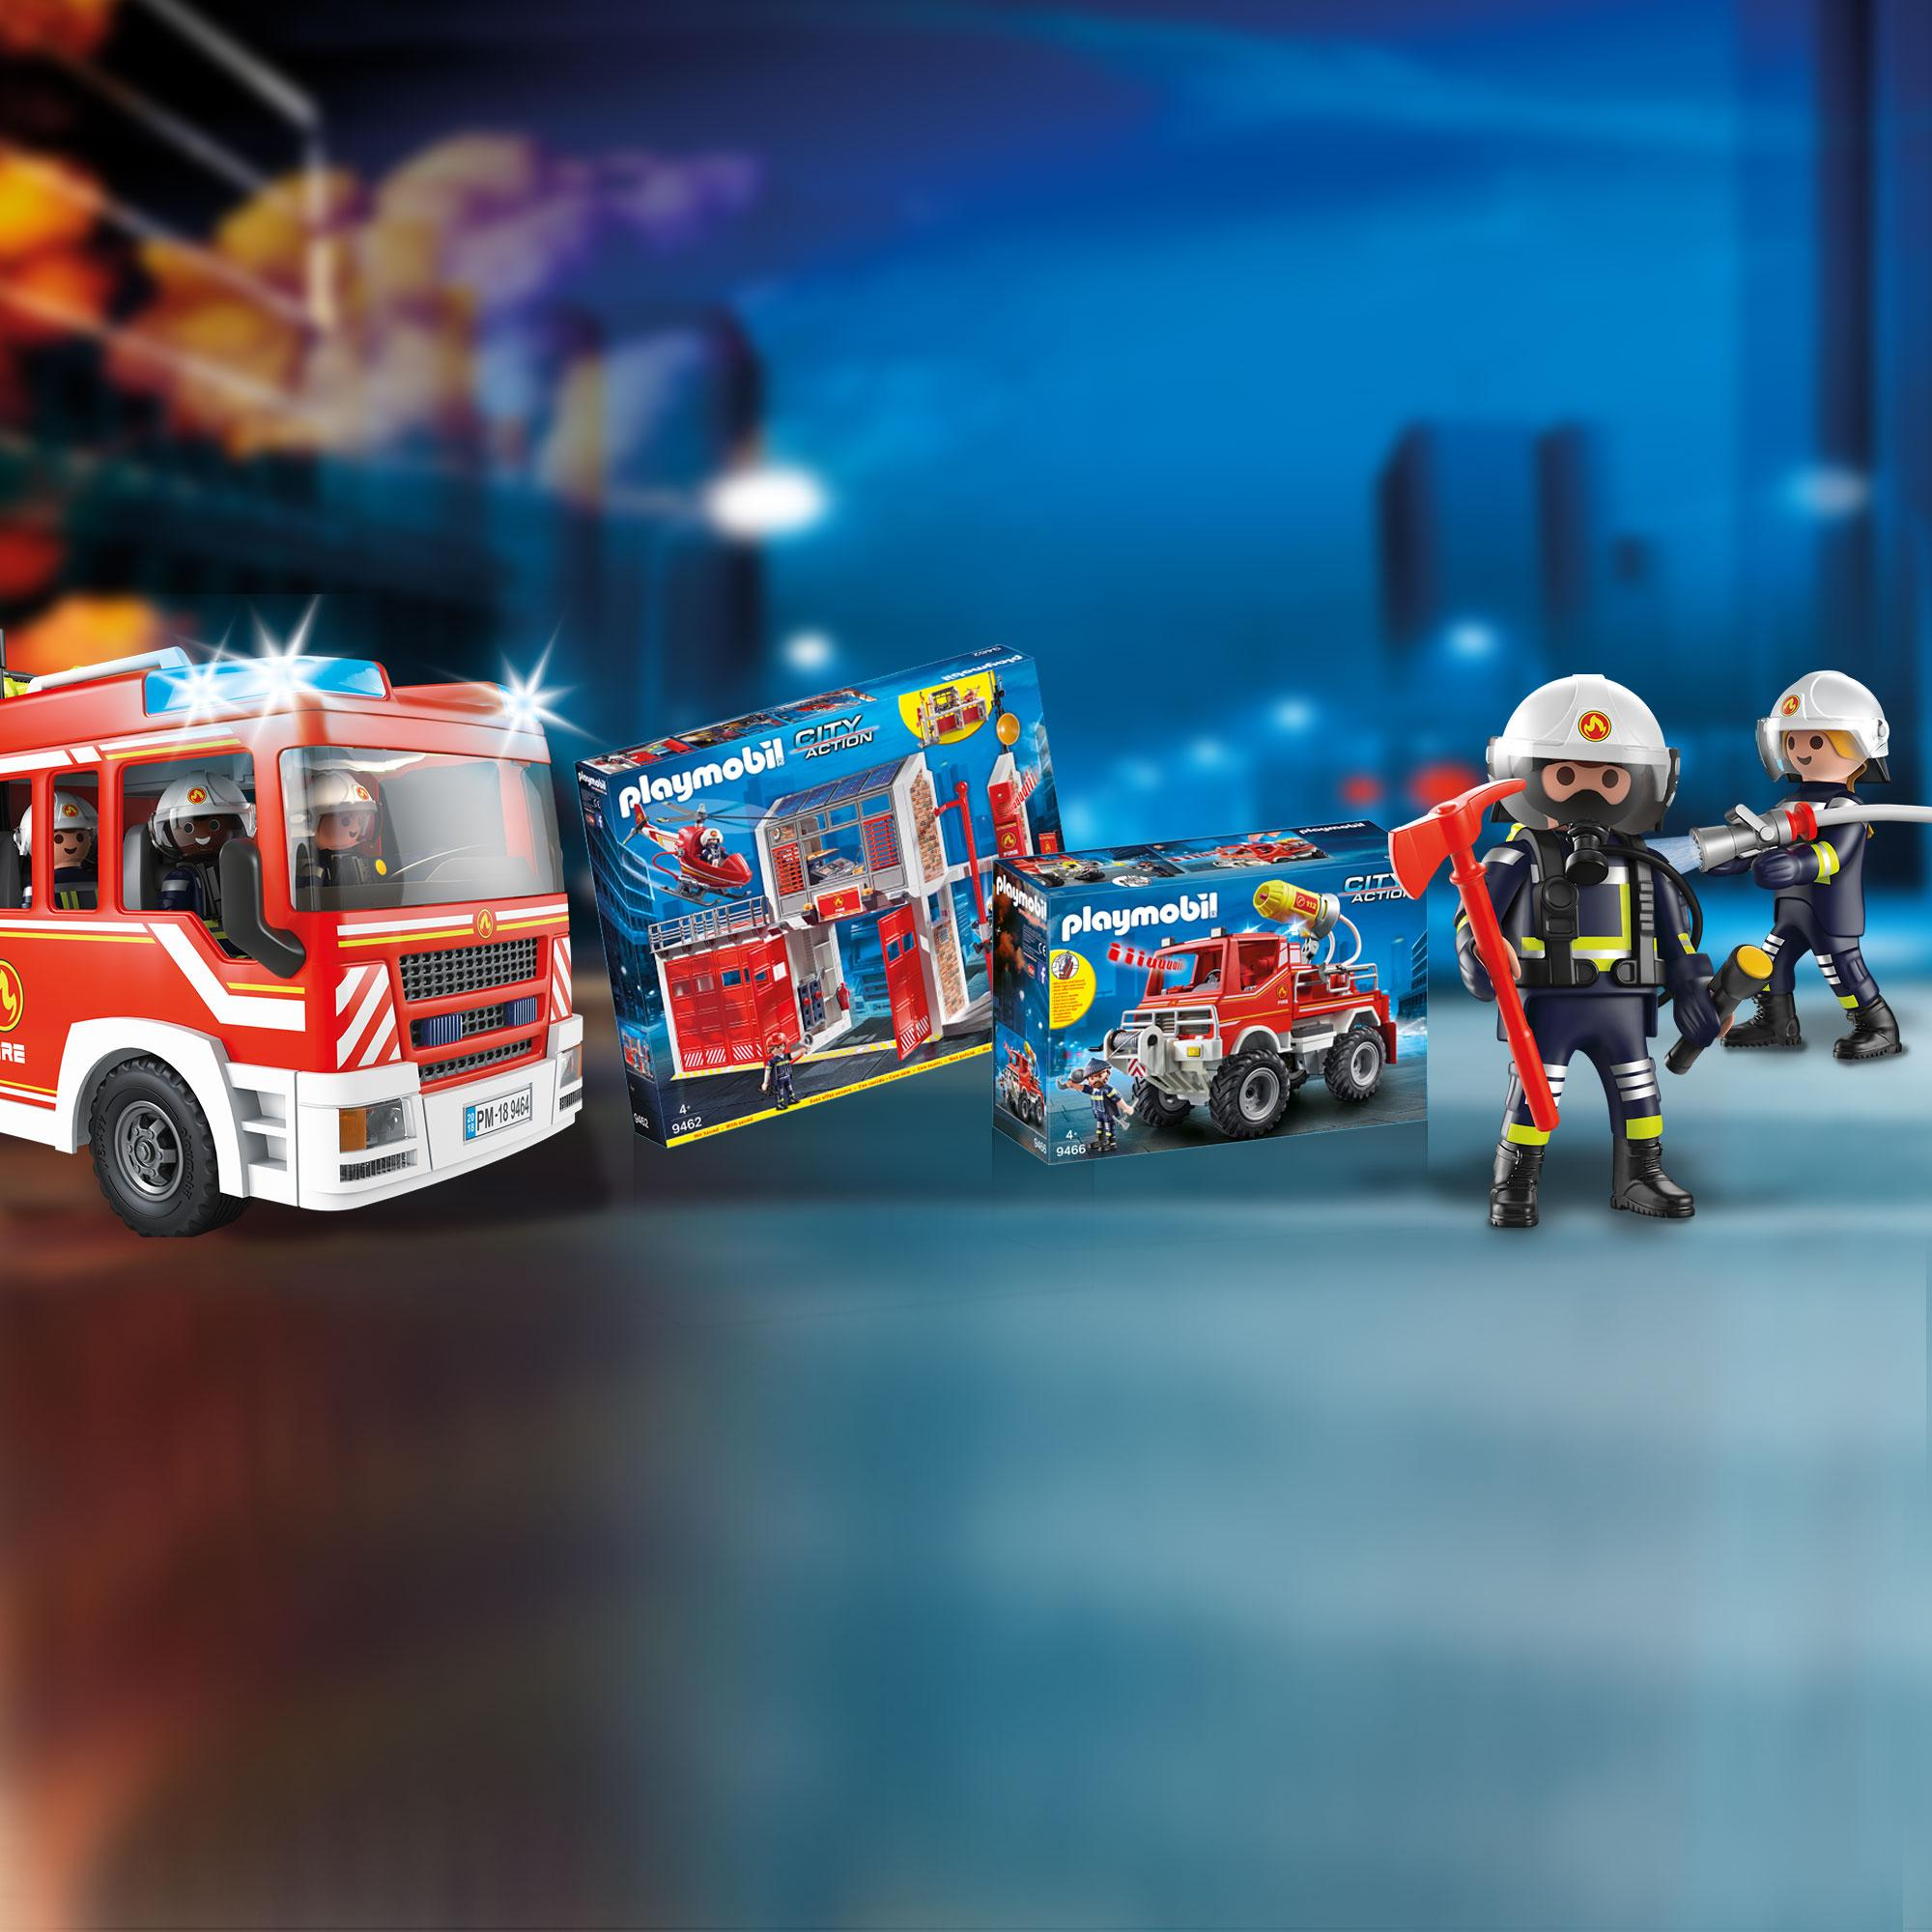 SHOP_CITYACTION_FIRERESCUE_2018_3x2_DE